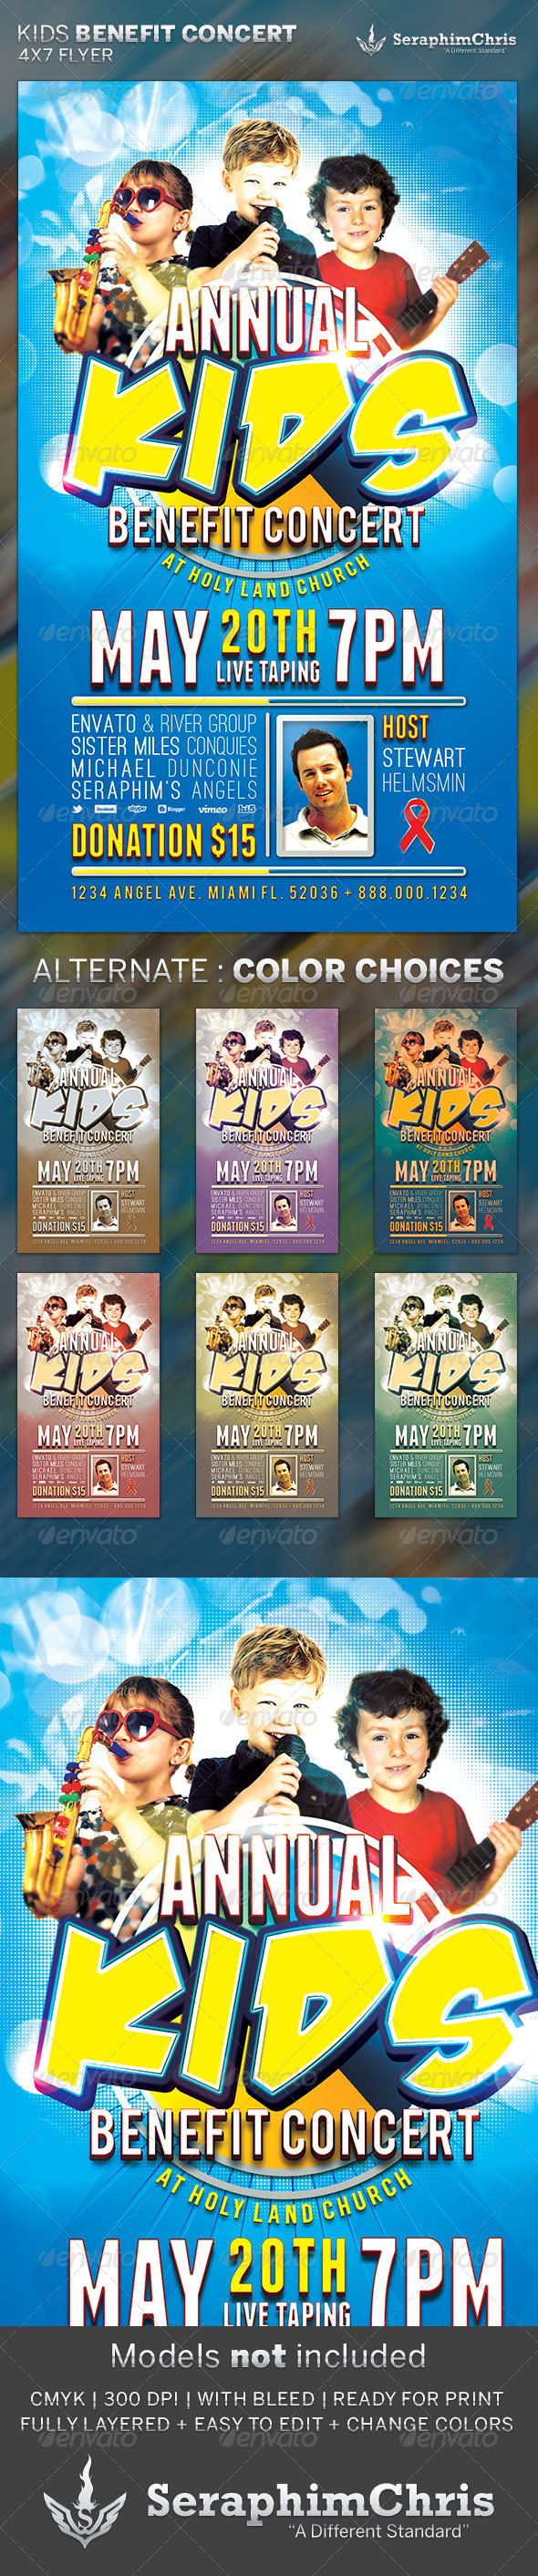 Kids Benefit Concert: Flyer Template - Church Flyers